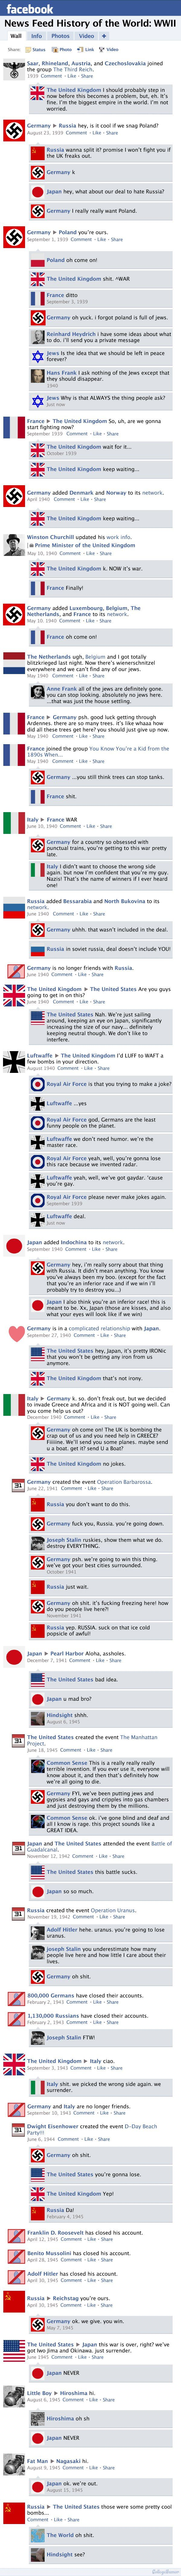 Facebook News Feed History of the World: World War I to World War II (Page 3) - CollegeHumor Article